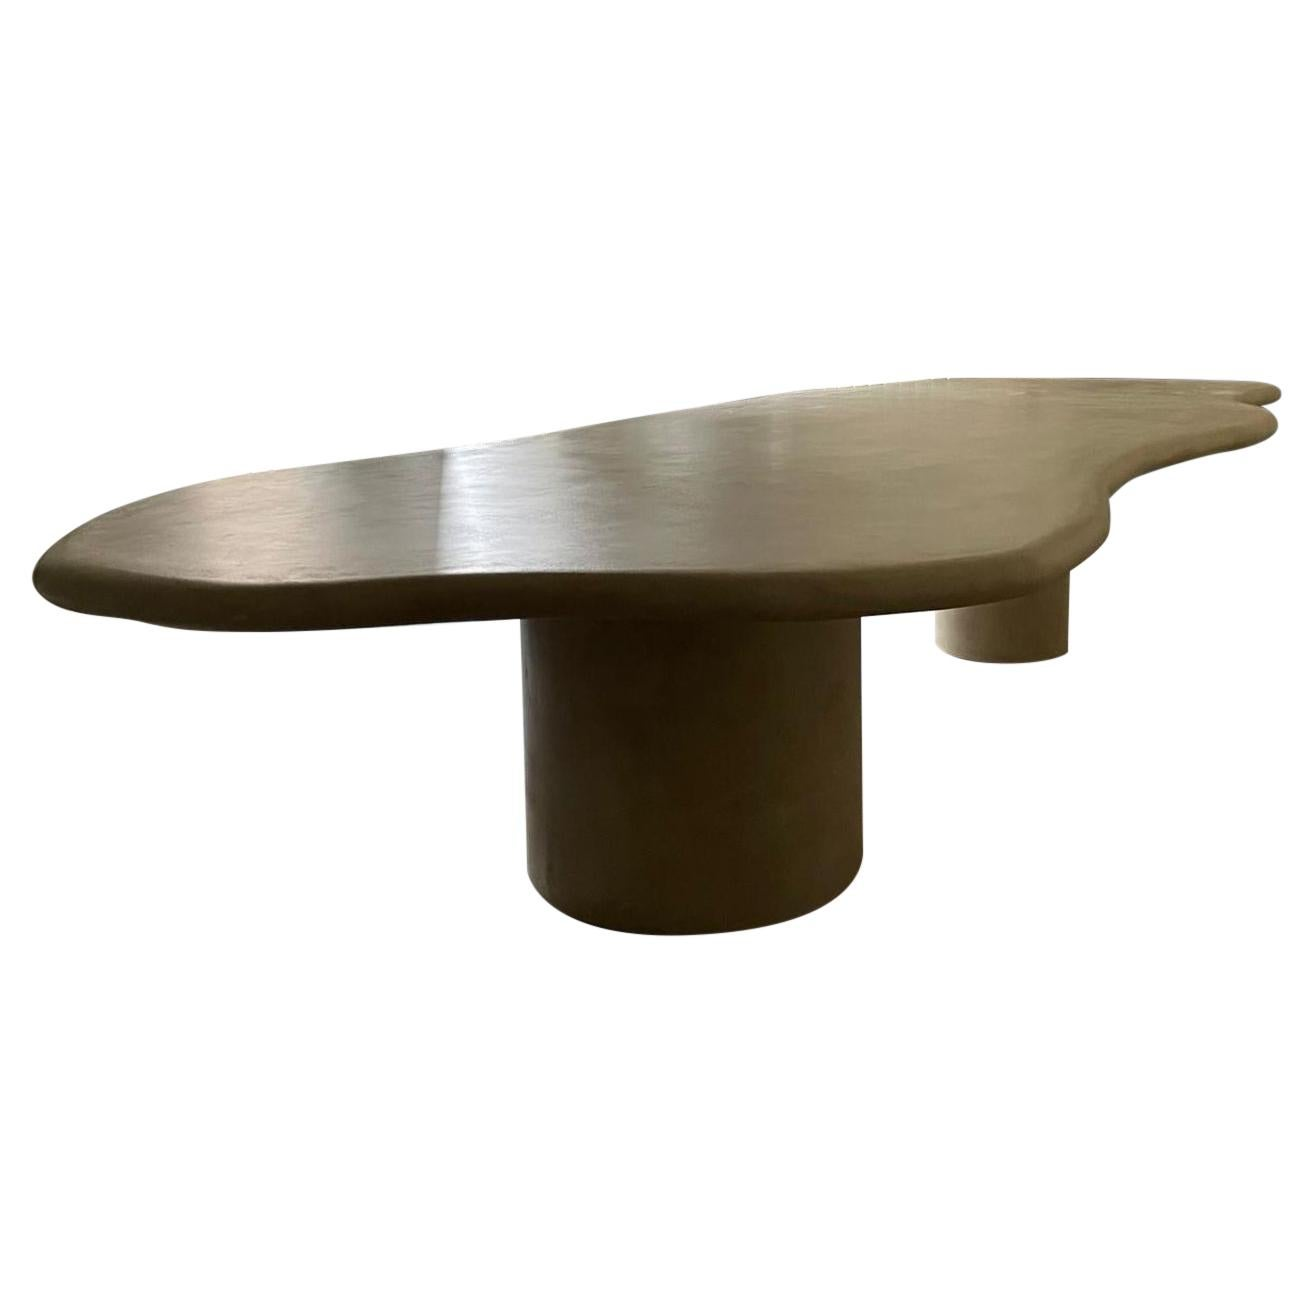 Sculptural Dining Table by Urban Creative